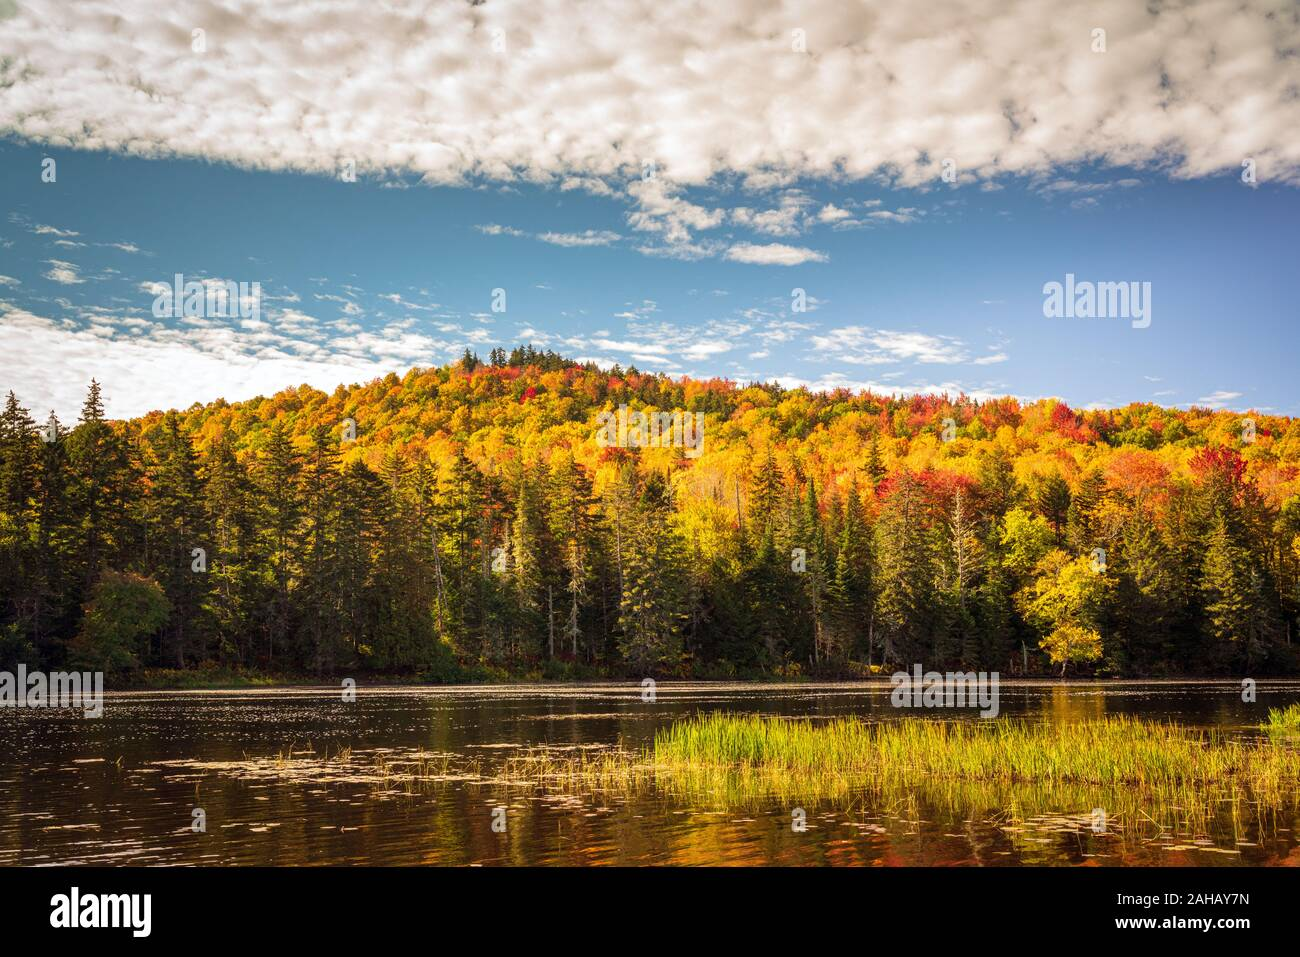 A calm river flows with colorful mountain forest foliage in the background. Stock Photo